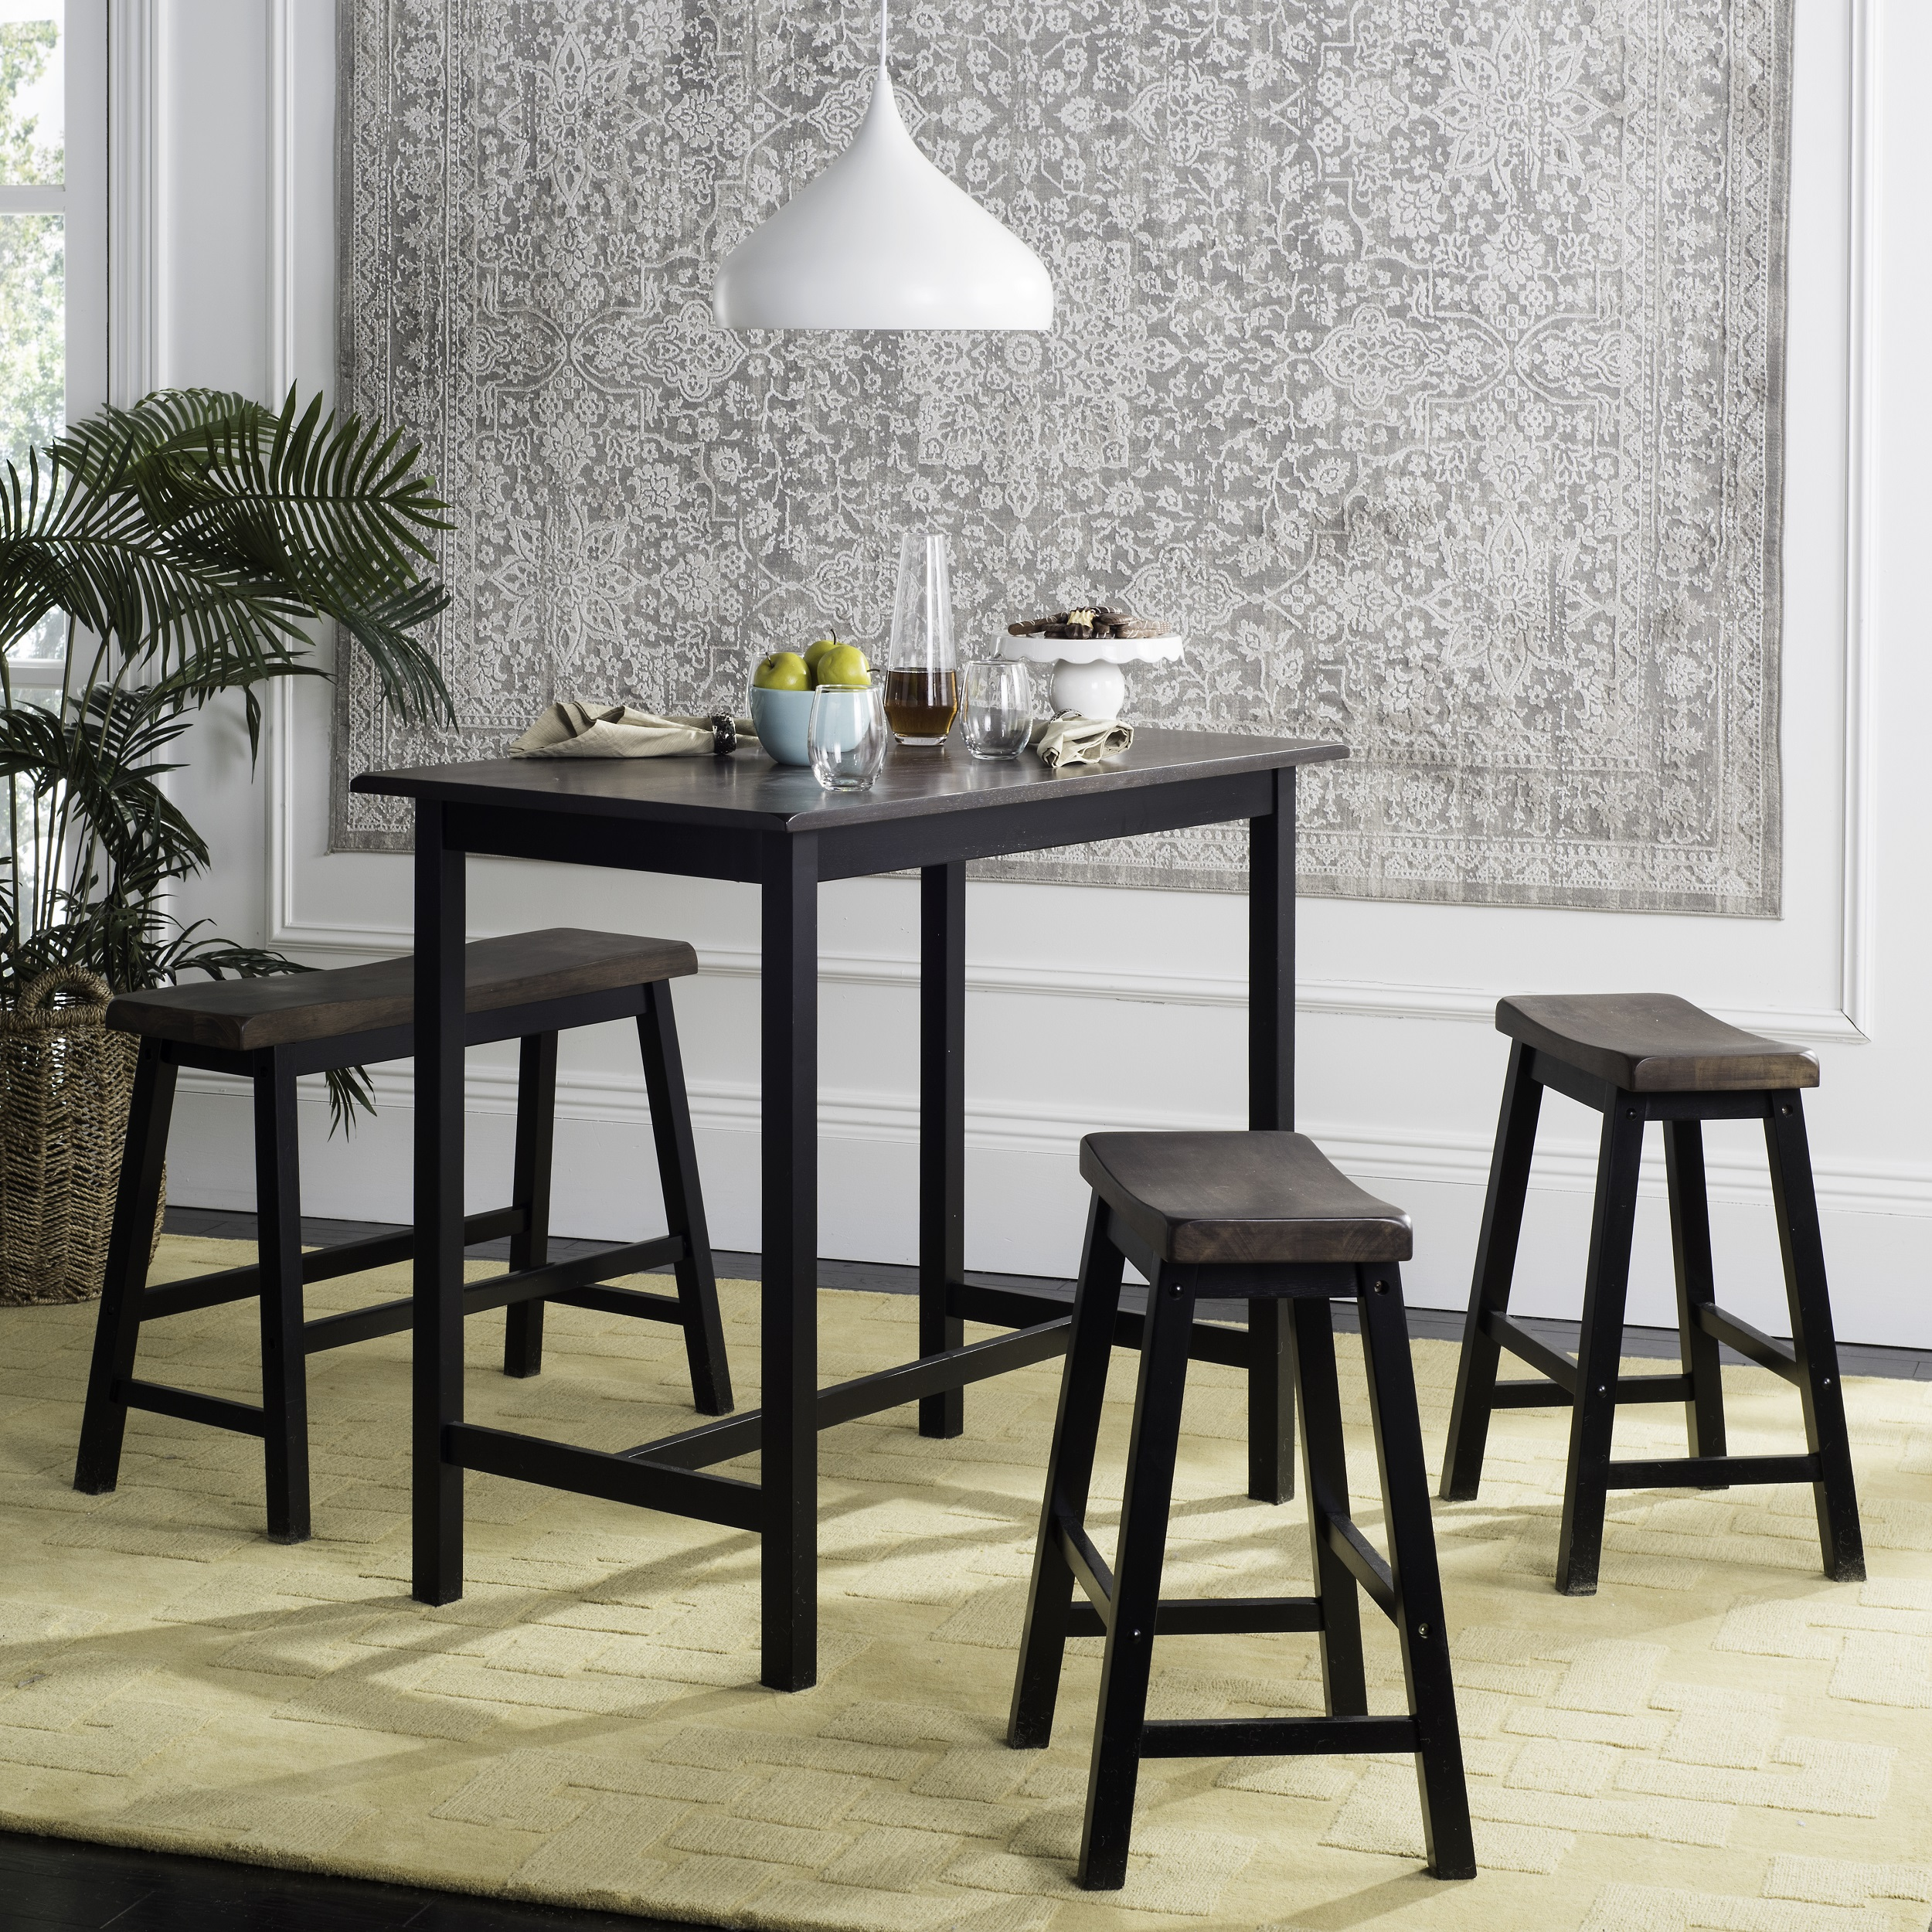 Safavieh Ronin Contemporary Glam 4 Piece Set Pub Table